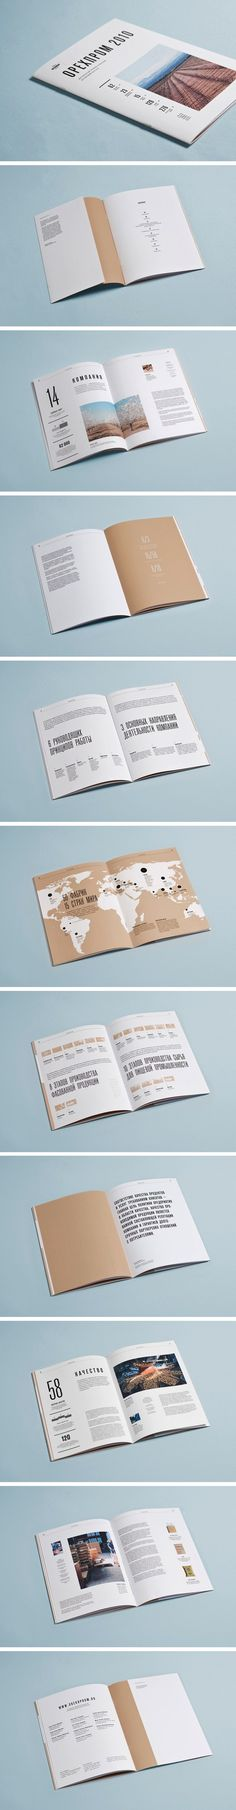 Good layout for #Graphic Design| http://graphic-design-collections.hana.flappyhouse.com